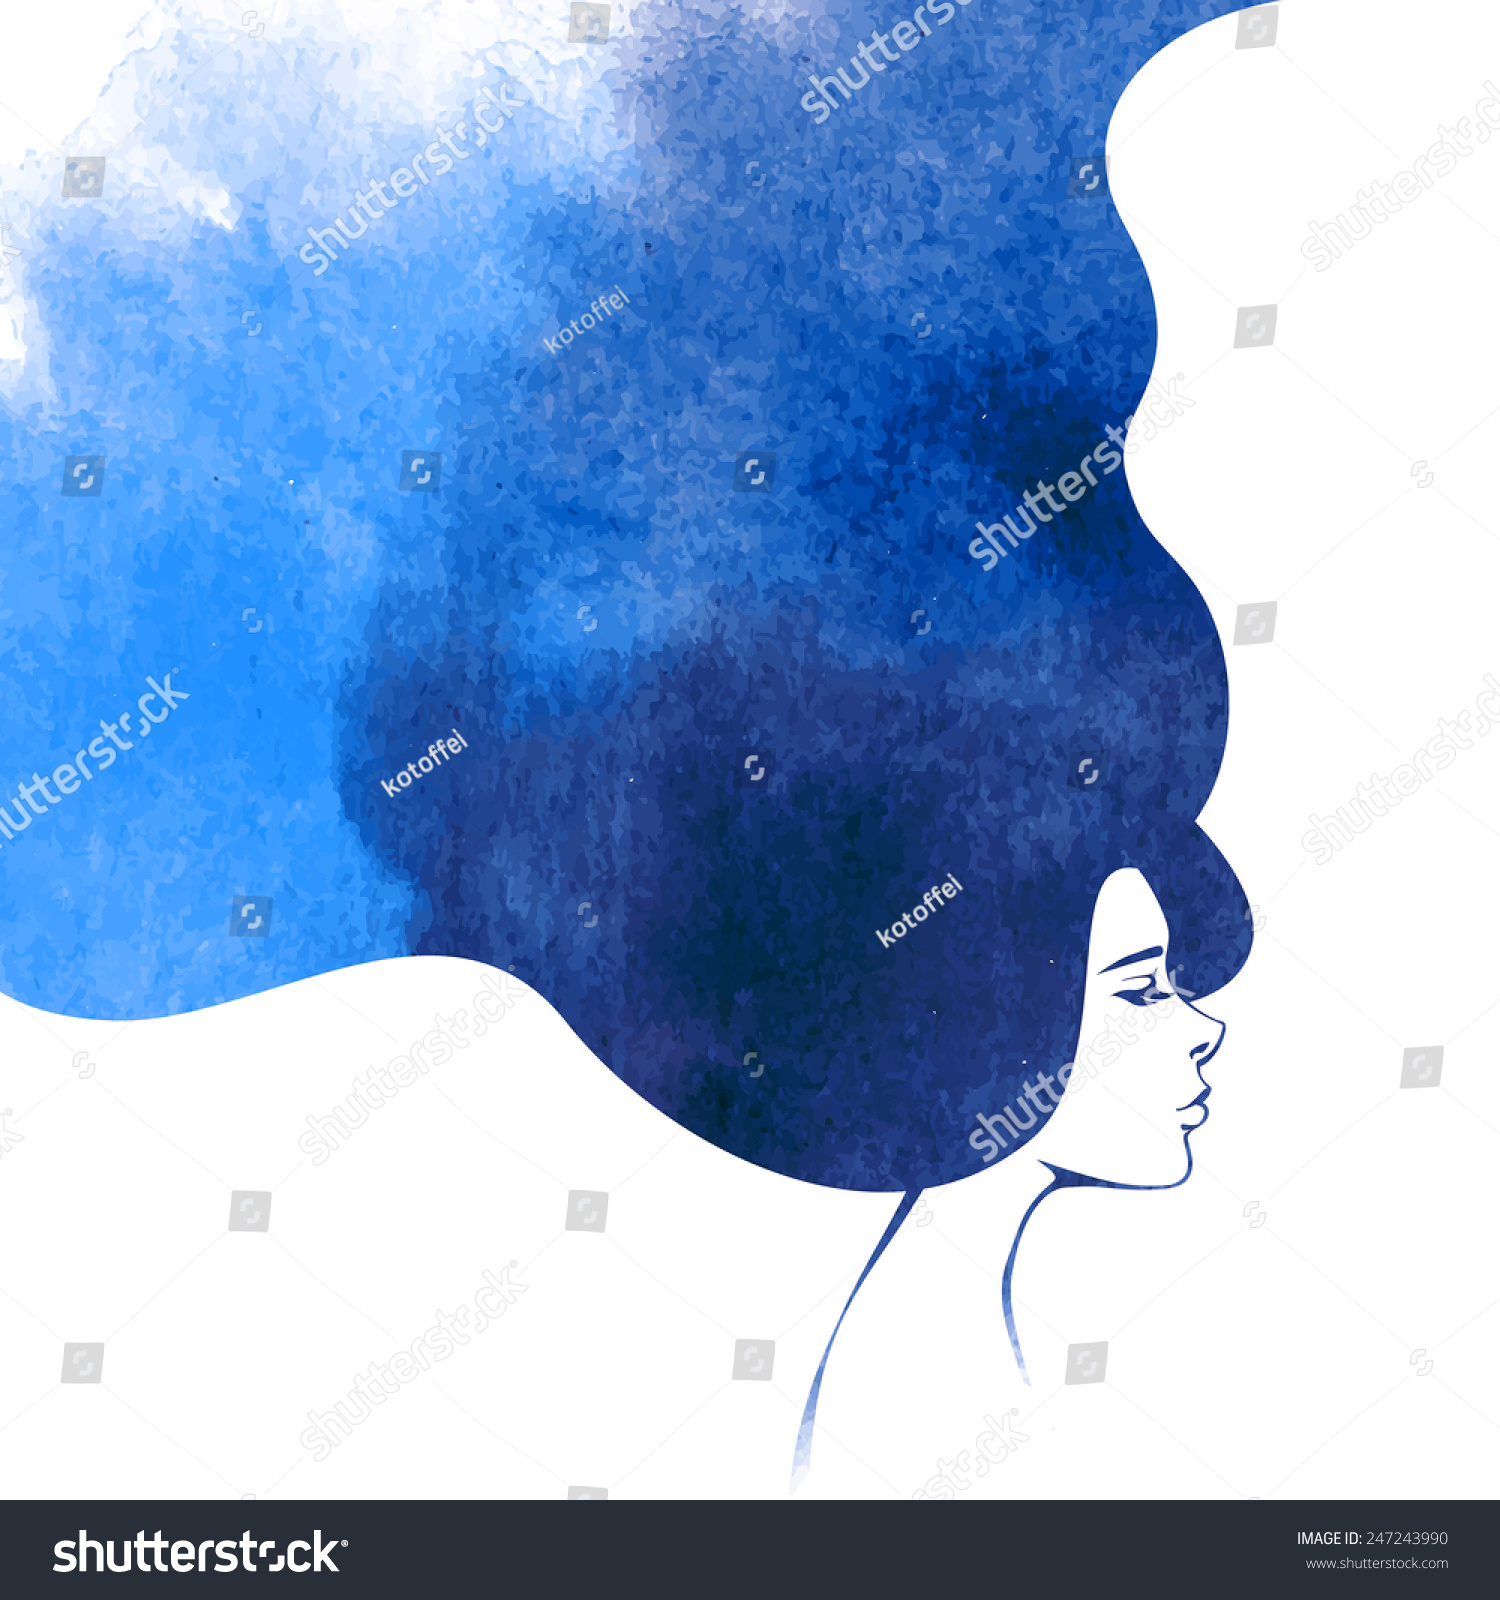 Hand painted mermaid watercolor vector silhouette stock vector - Watercolor Fashion Woman With Long Hair Vector Illustration Beautiful Mermaid Face Girl Silhouette